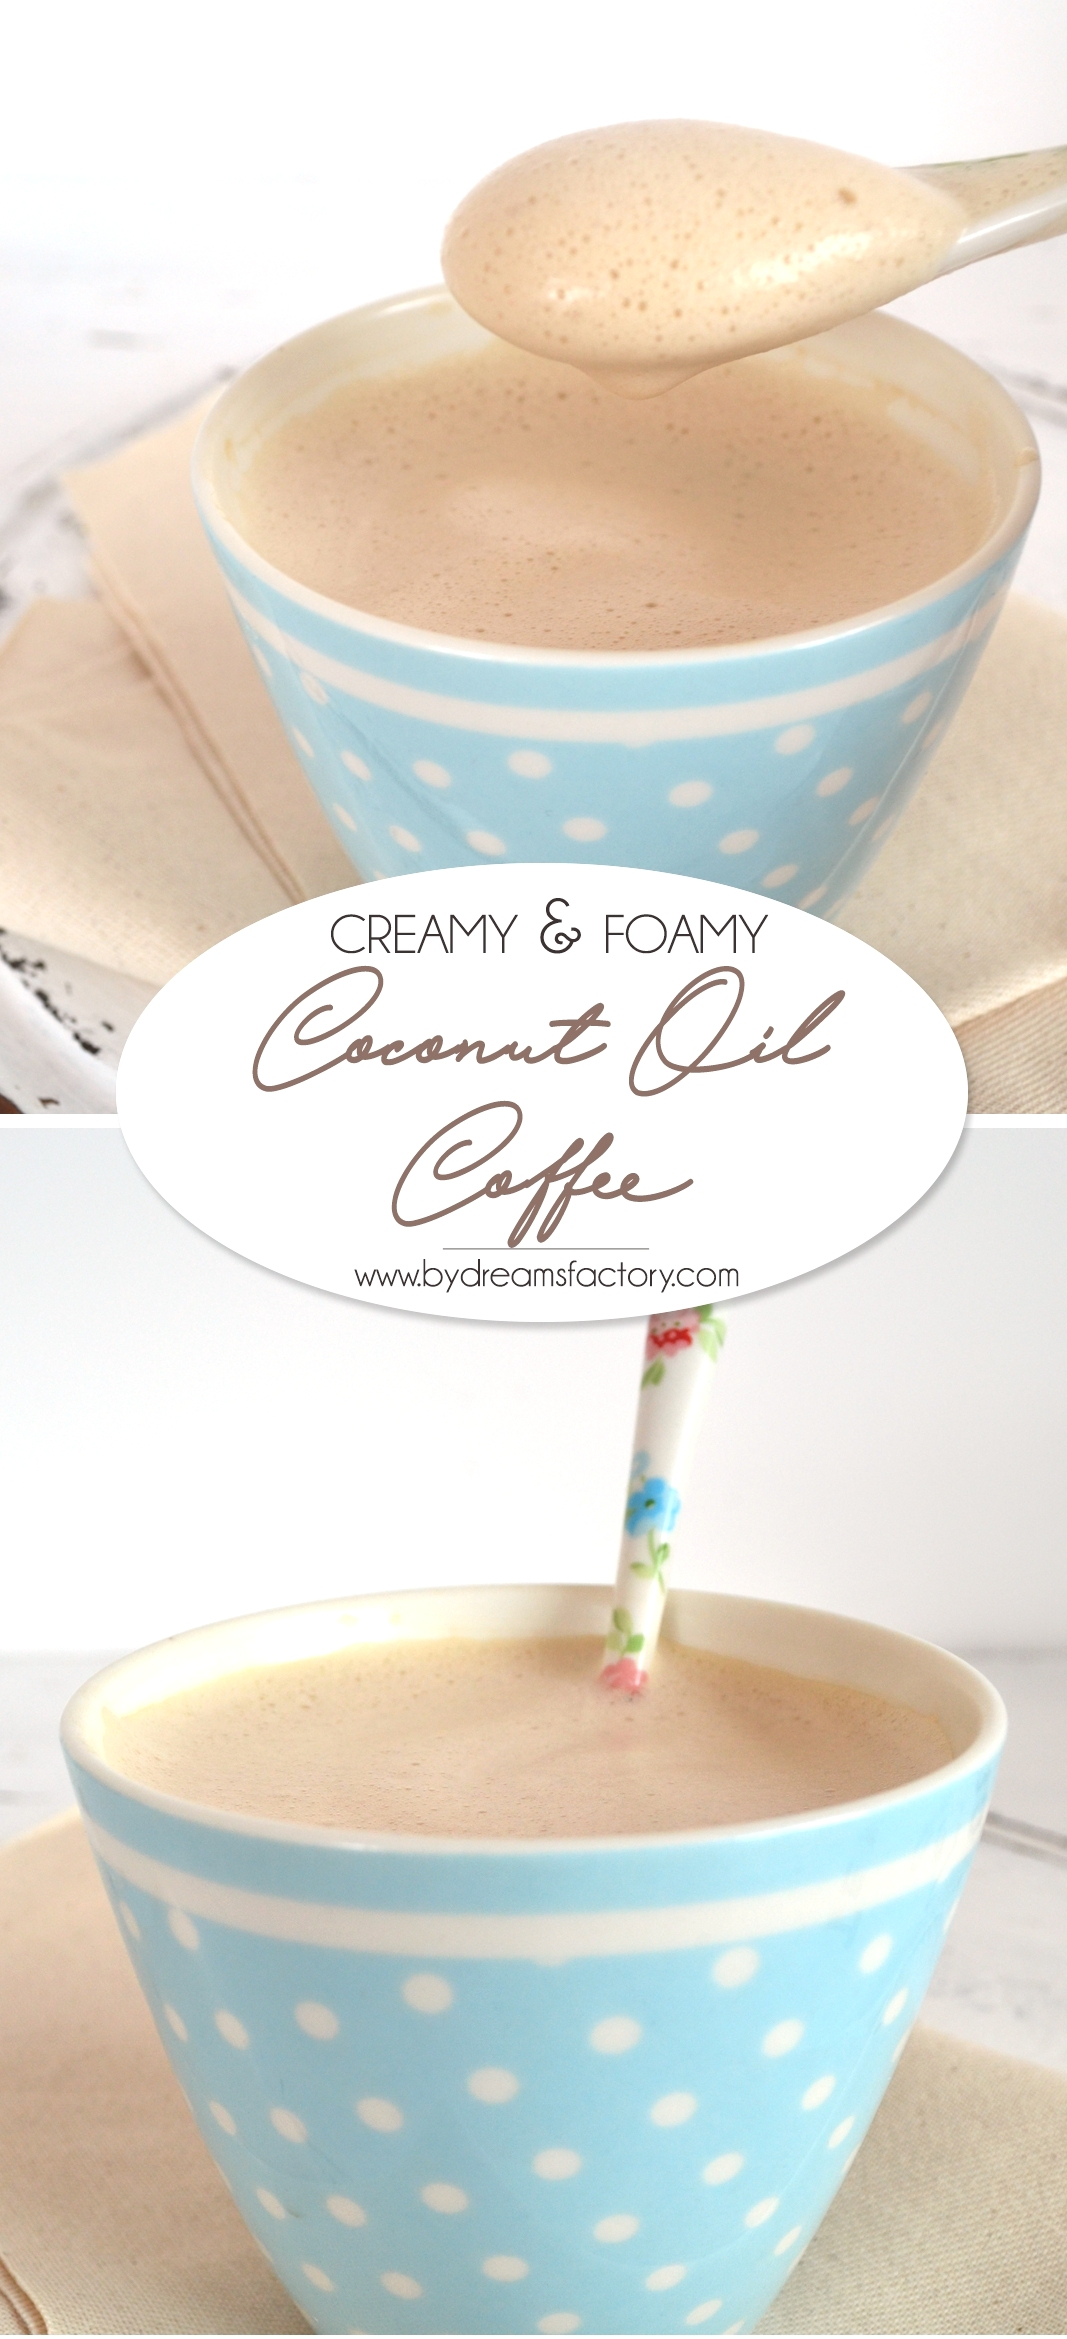 Creamy and foamy coconut oil coffee